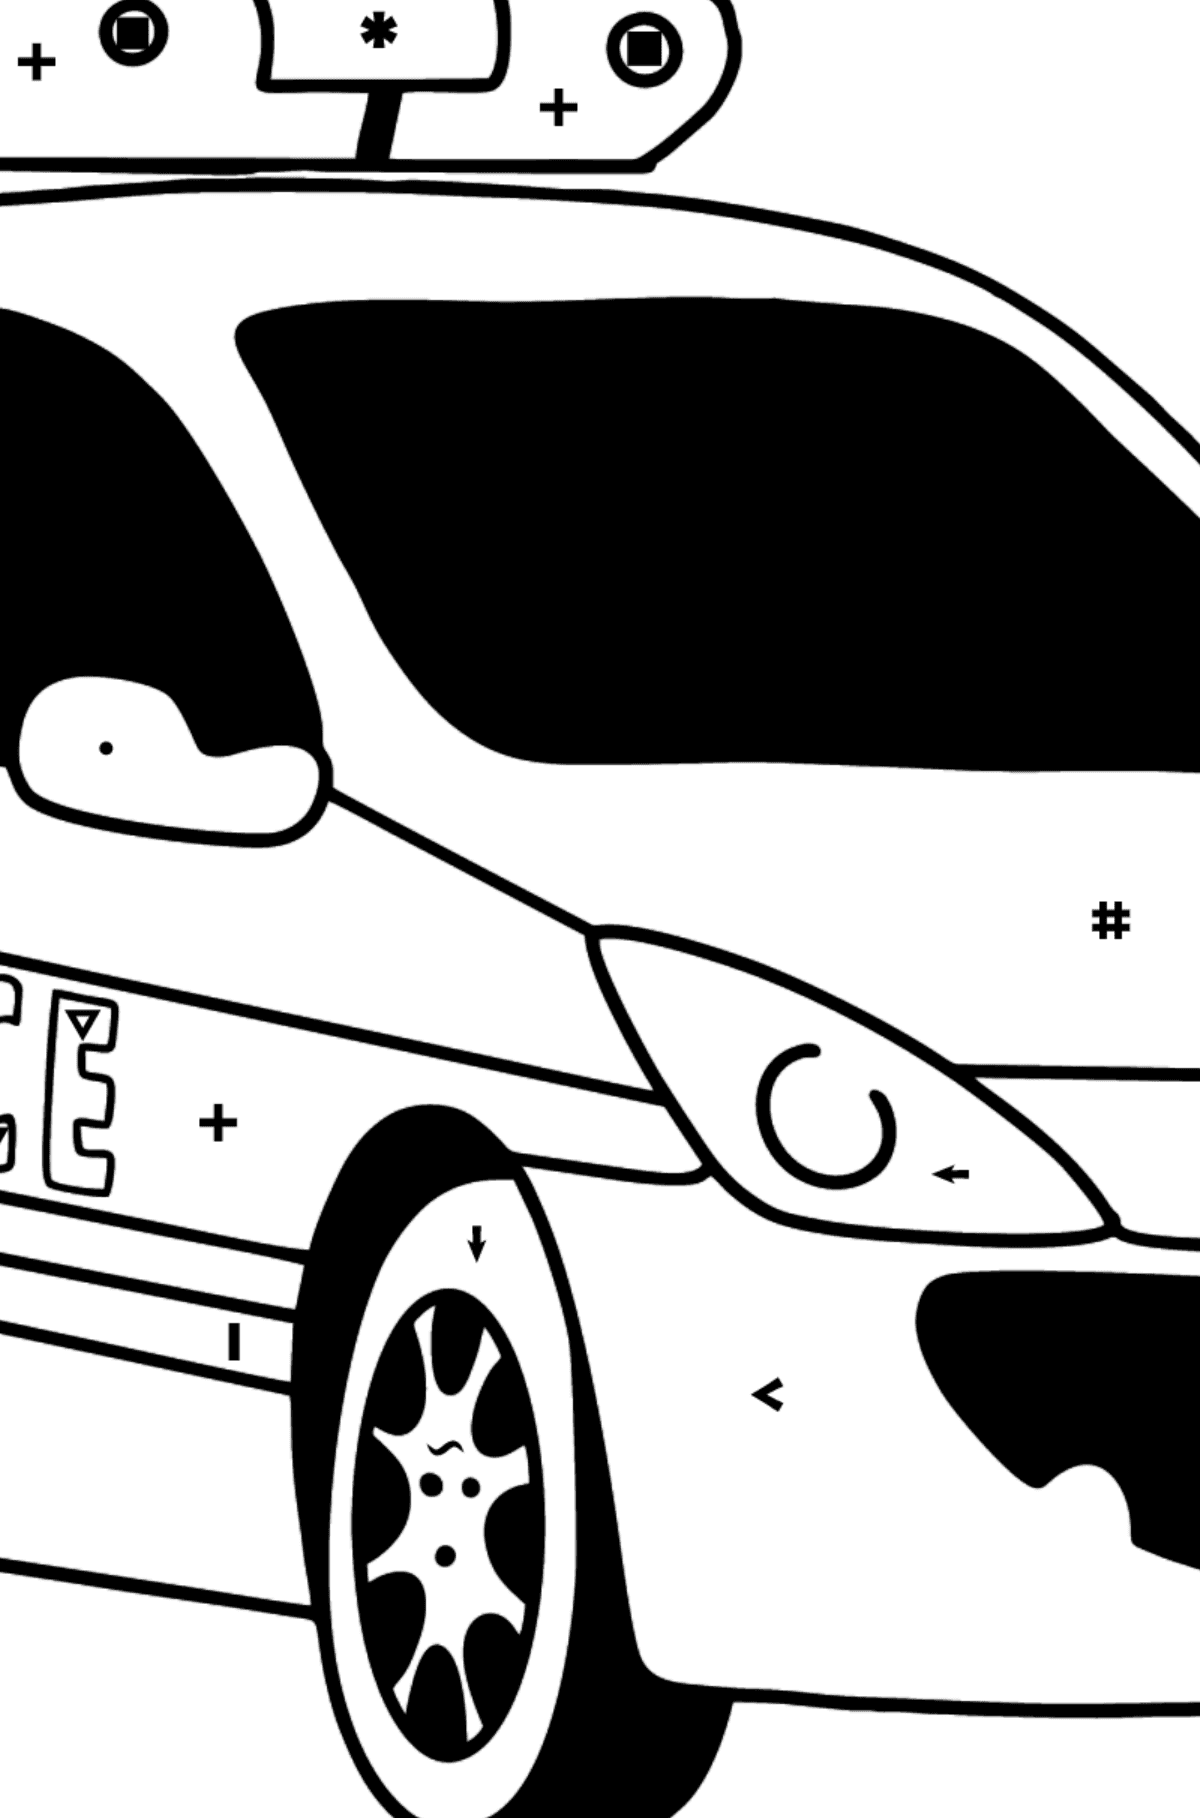 Police Car in France coloring page - Coloring by Symbols for Kids